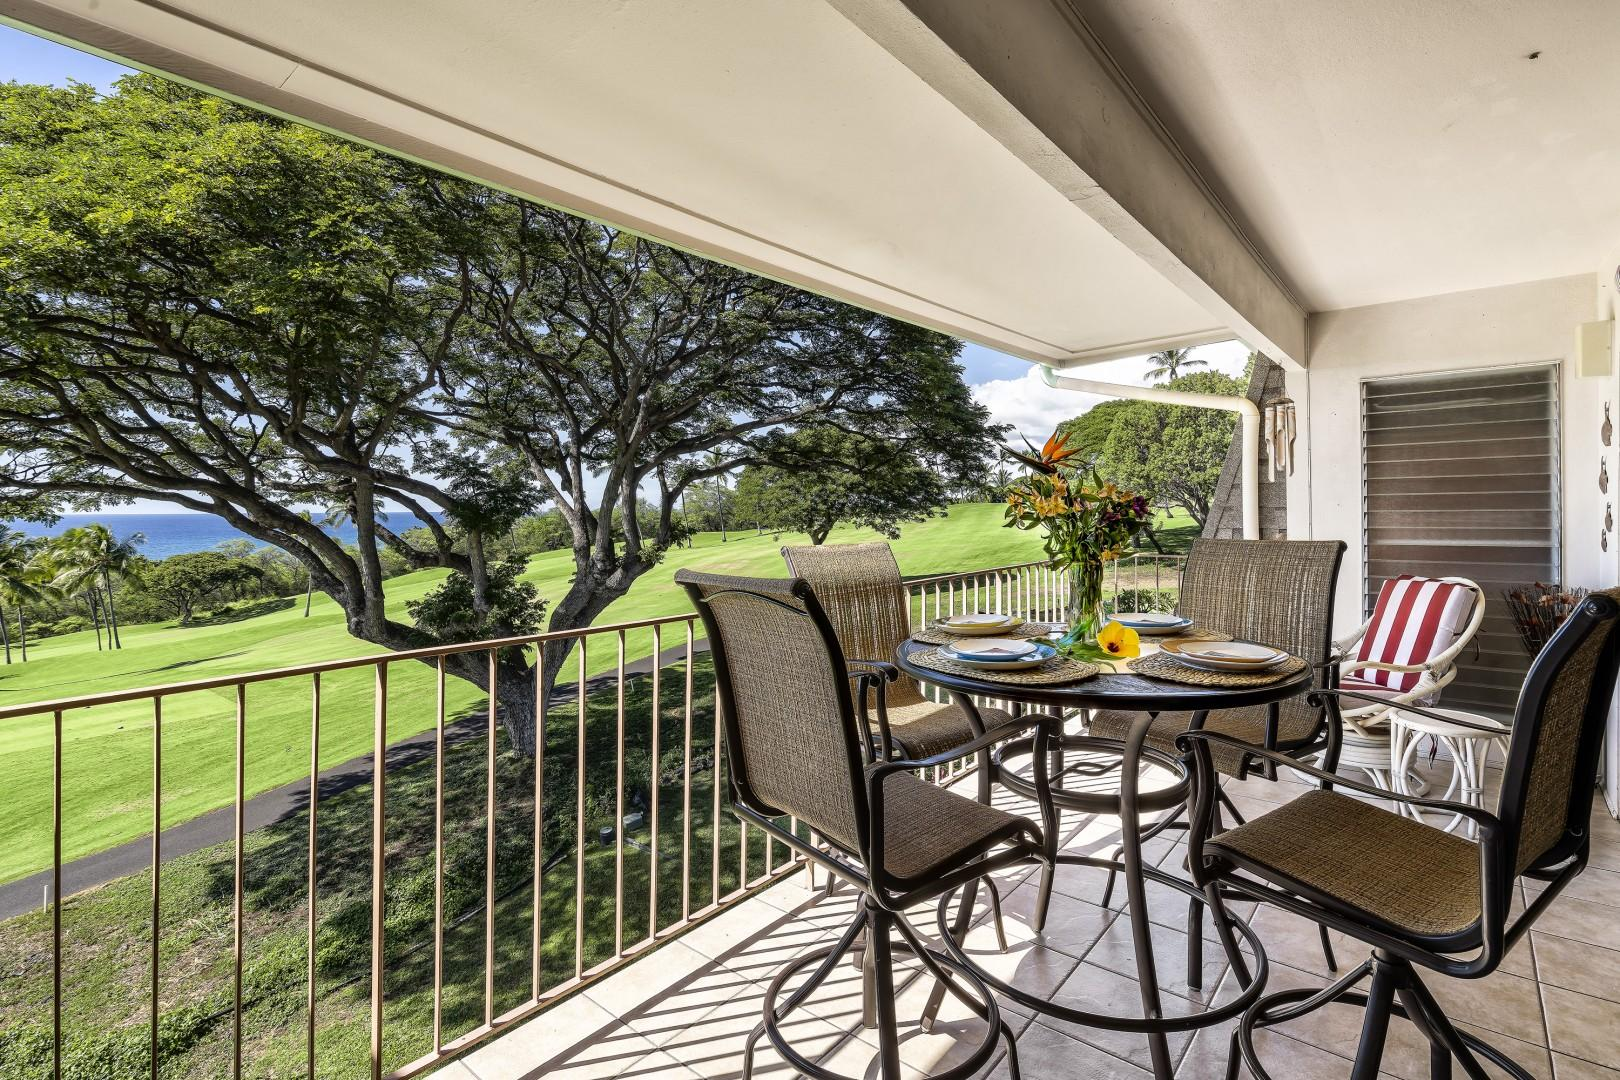 On the Lanai you'll find additional seating and a BBQ!